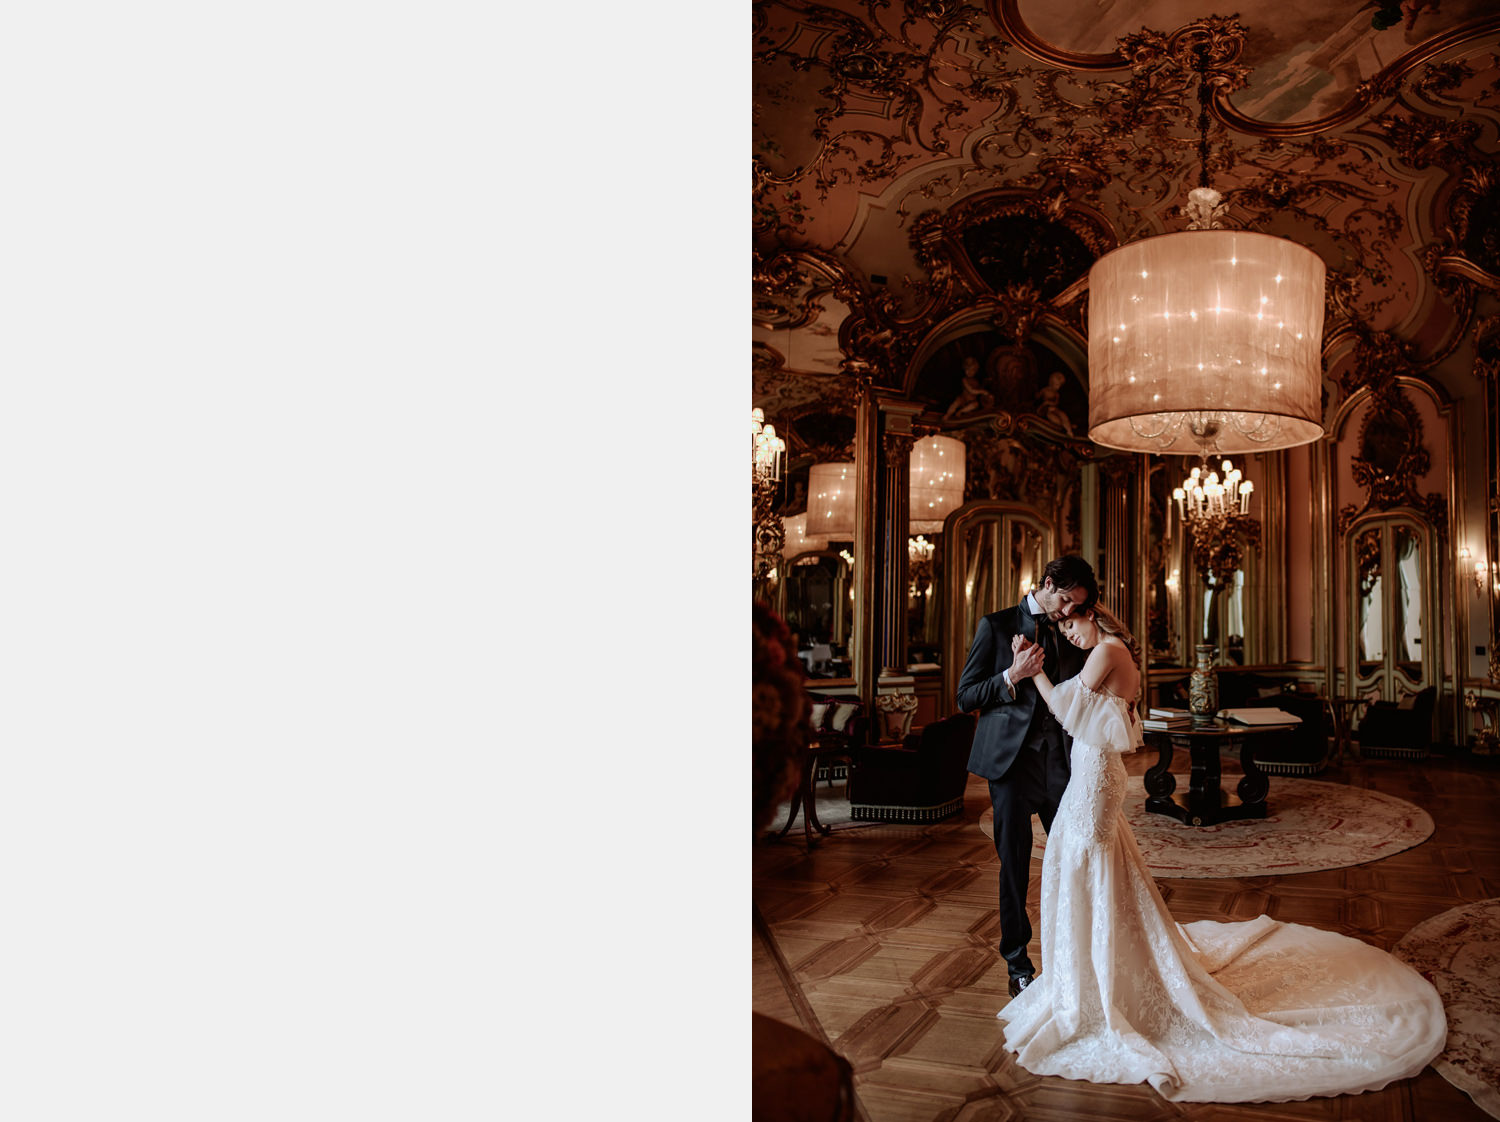 florence-luxury-wedding-photography-Villa-Cora-elopement-elegant